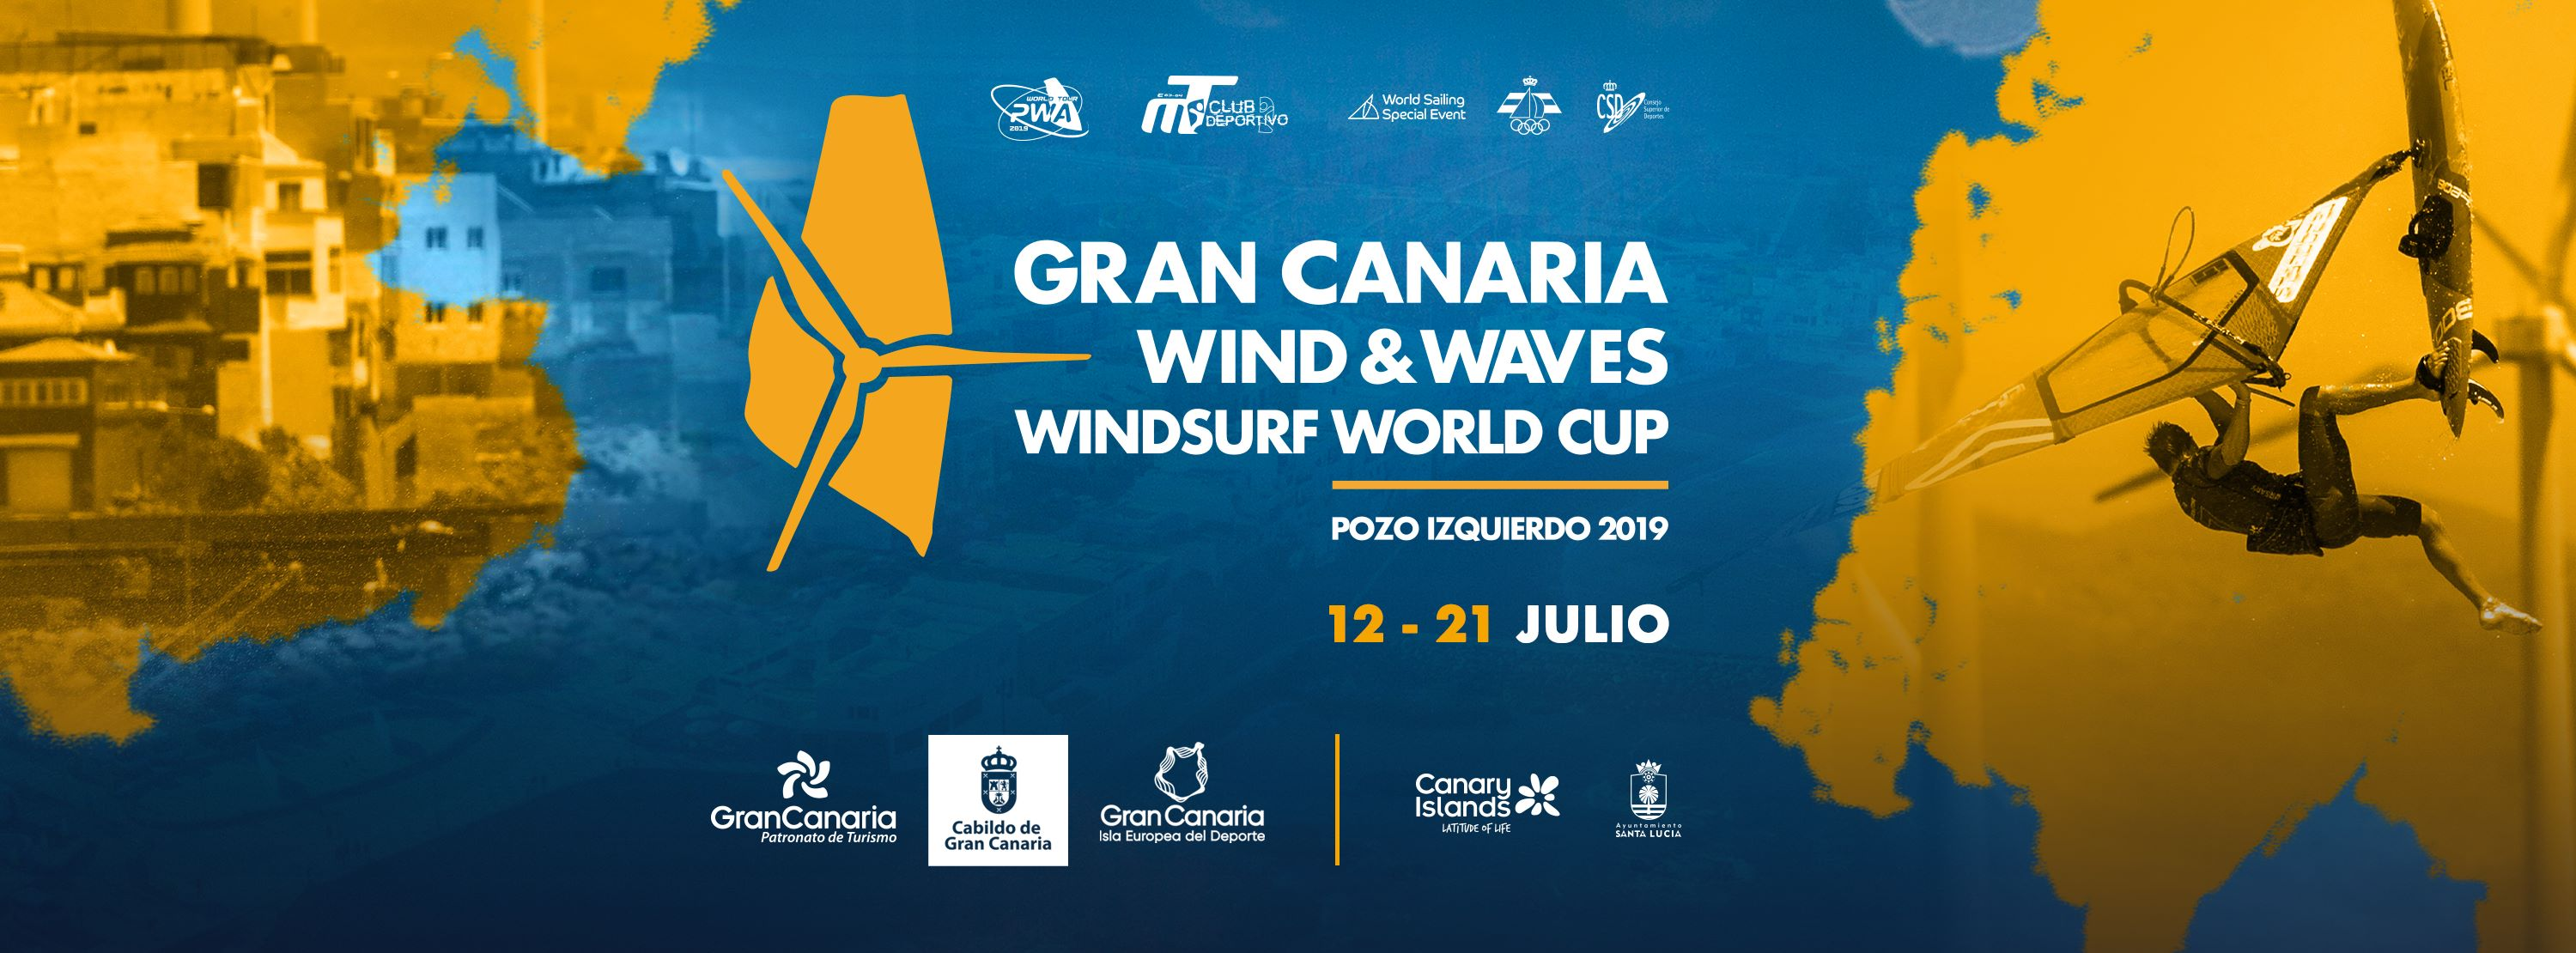 Gran Canaria Wind & Waves Festival 2019